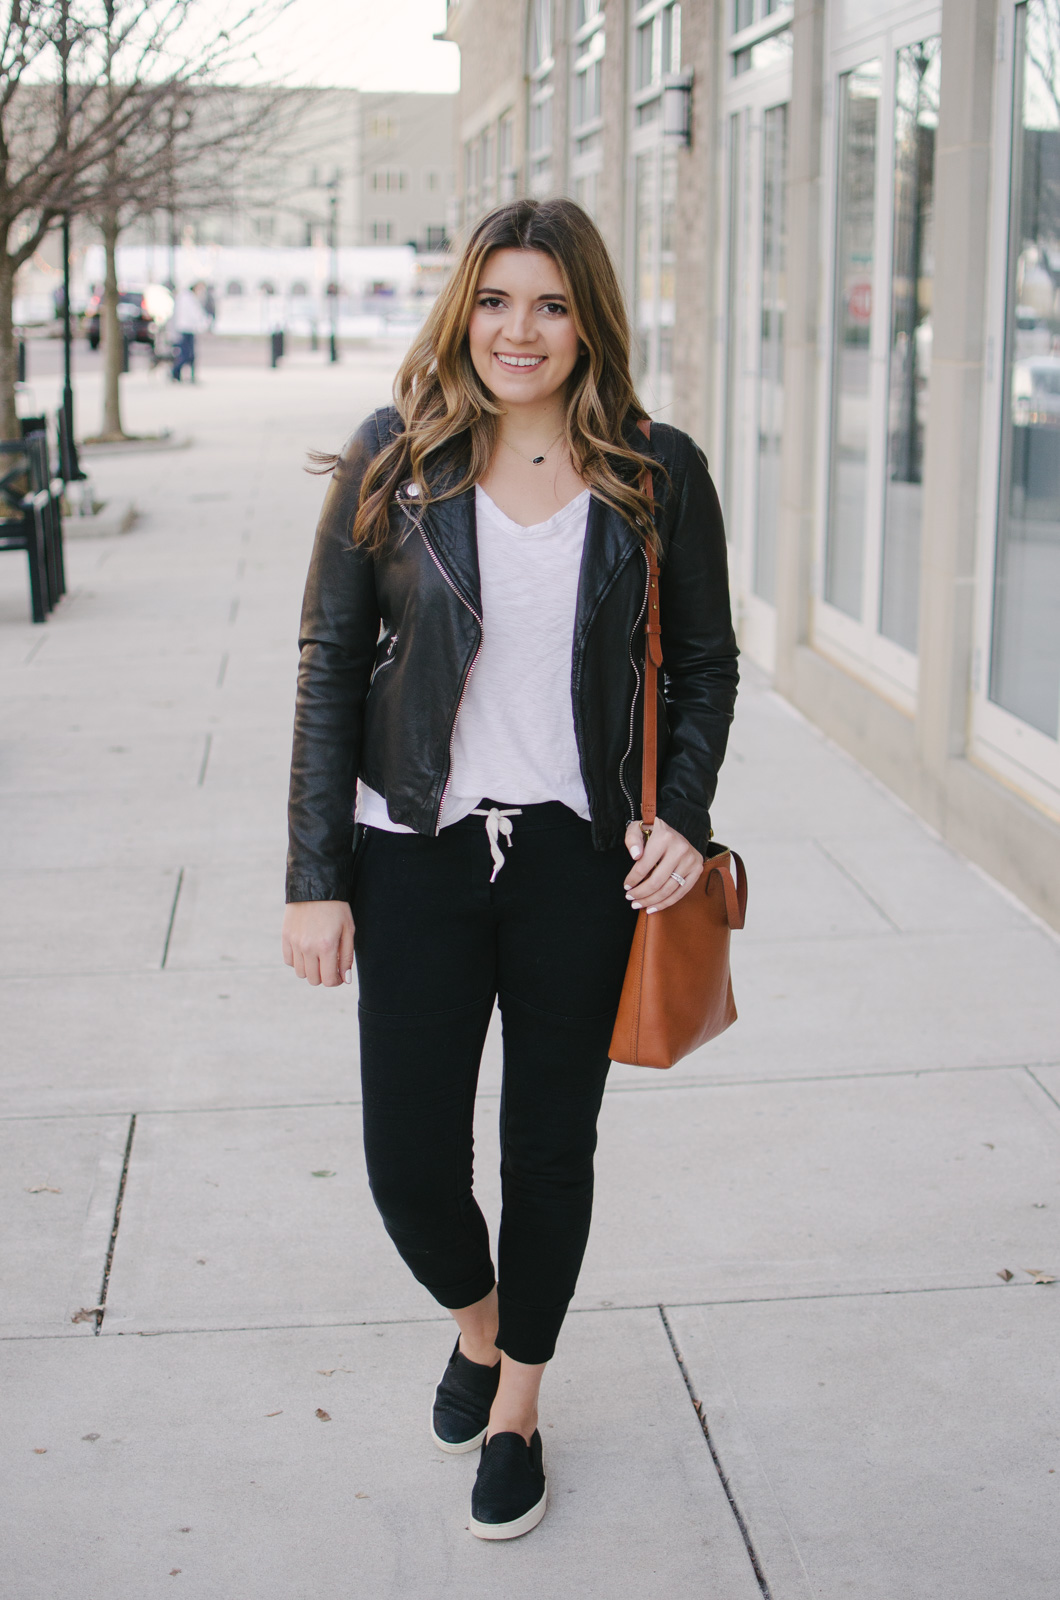 casual jogger pants outfit - two ways to wear jogger pants + all my tips for how to style them | Click through to shop this look or see the other casual jogger pants outfit idea! bylaurenm.com